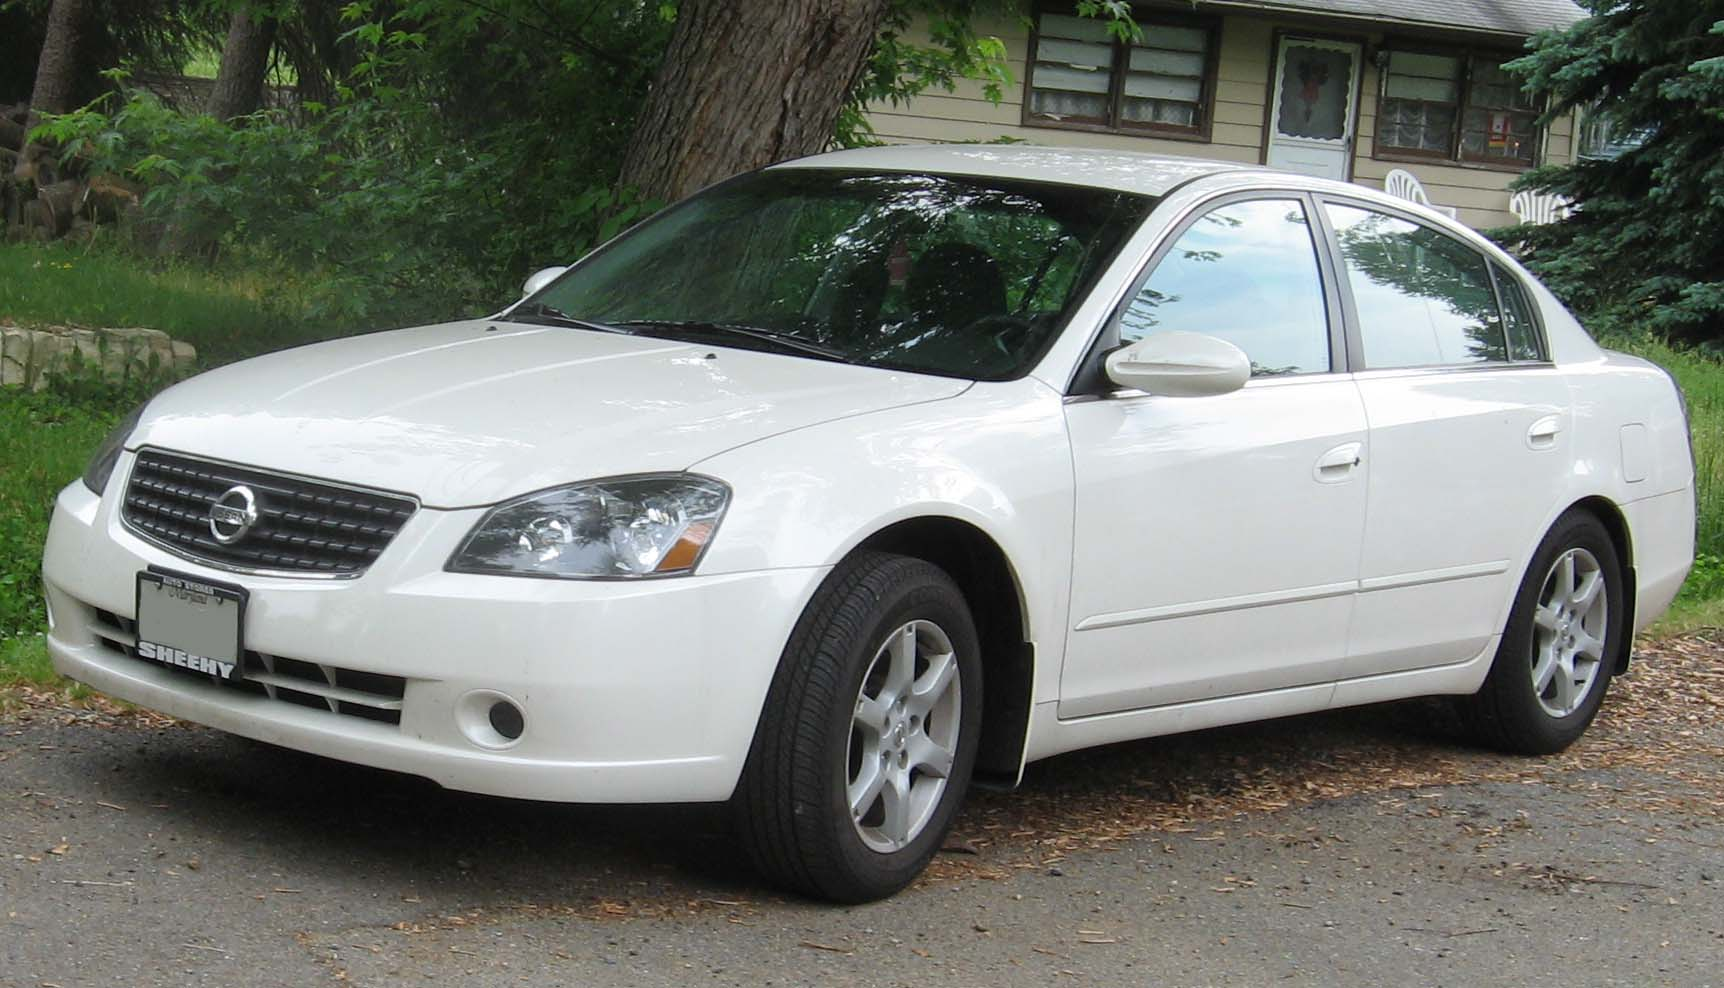 2004 nissan altima white interior gallery hd cars wallpaper 2006 nissan altima information and photos zombiedrive 2006 nissan altima 16 nissan altima 16 vanachro gallery vanachro Image collections